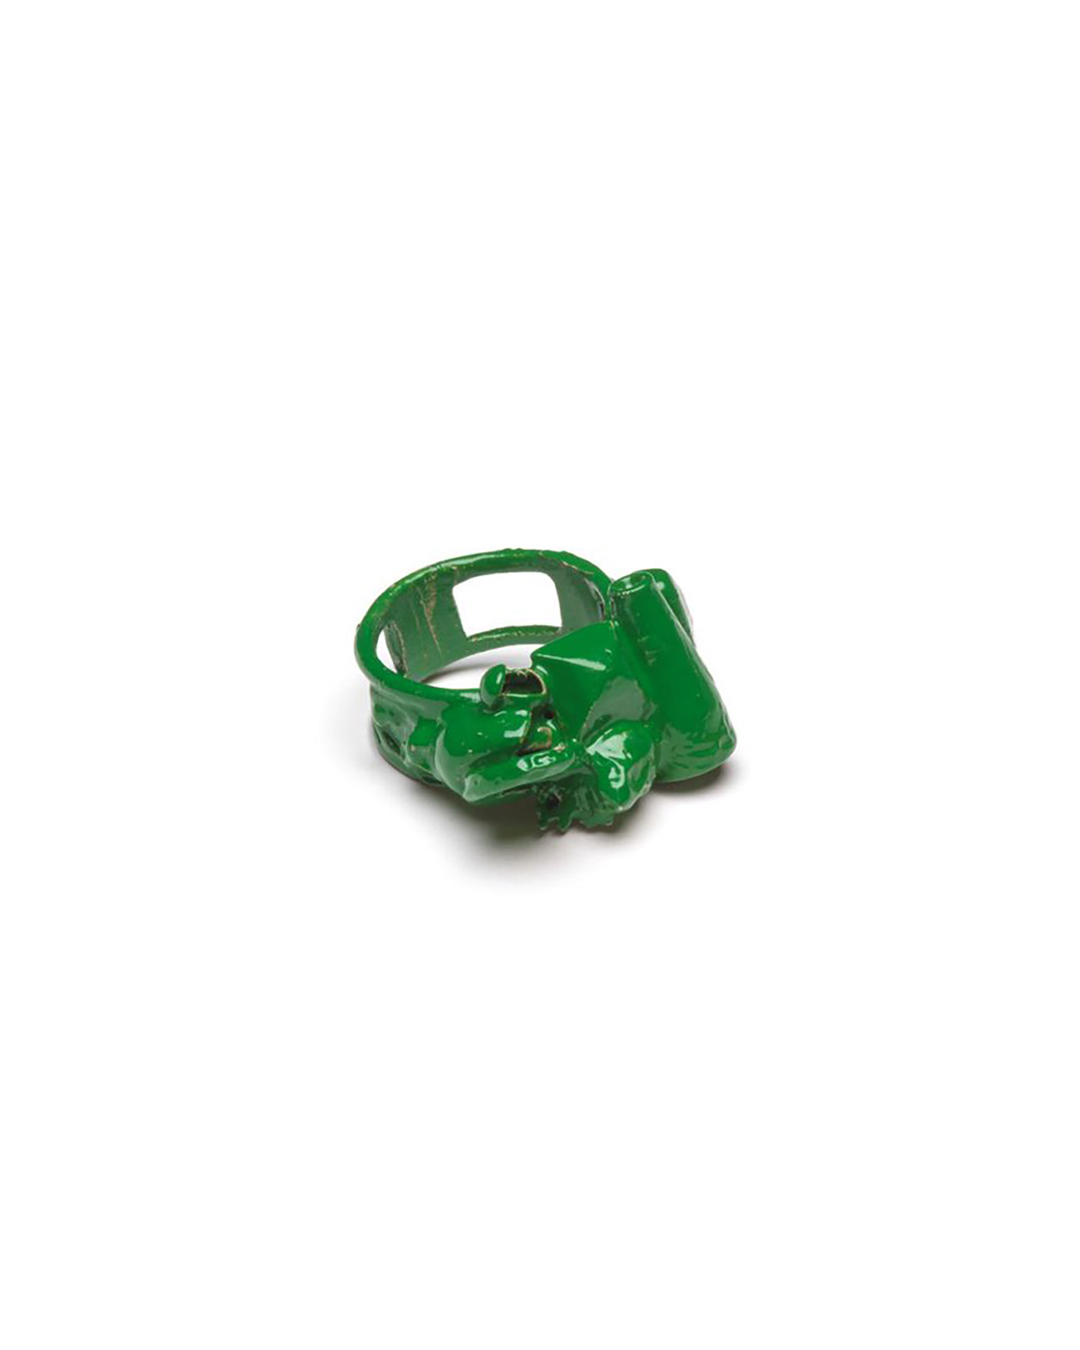 Doron Taubenfeld, untitled, 2009, ring; metal, paint, 30 x 25 x 18 mm, €350